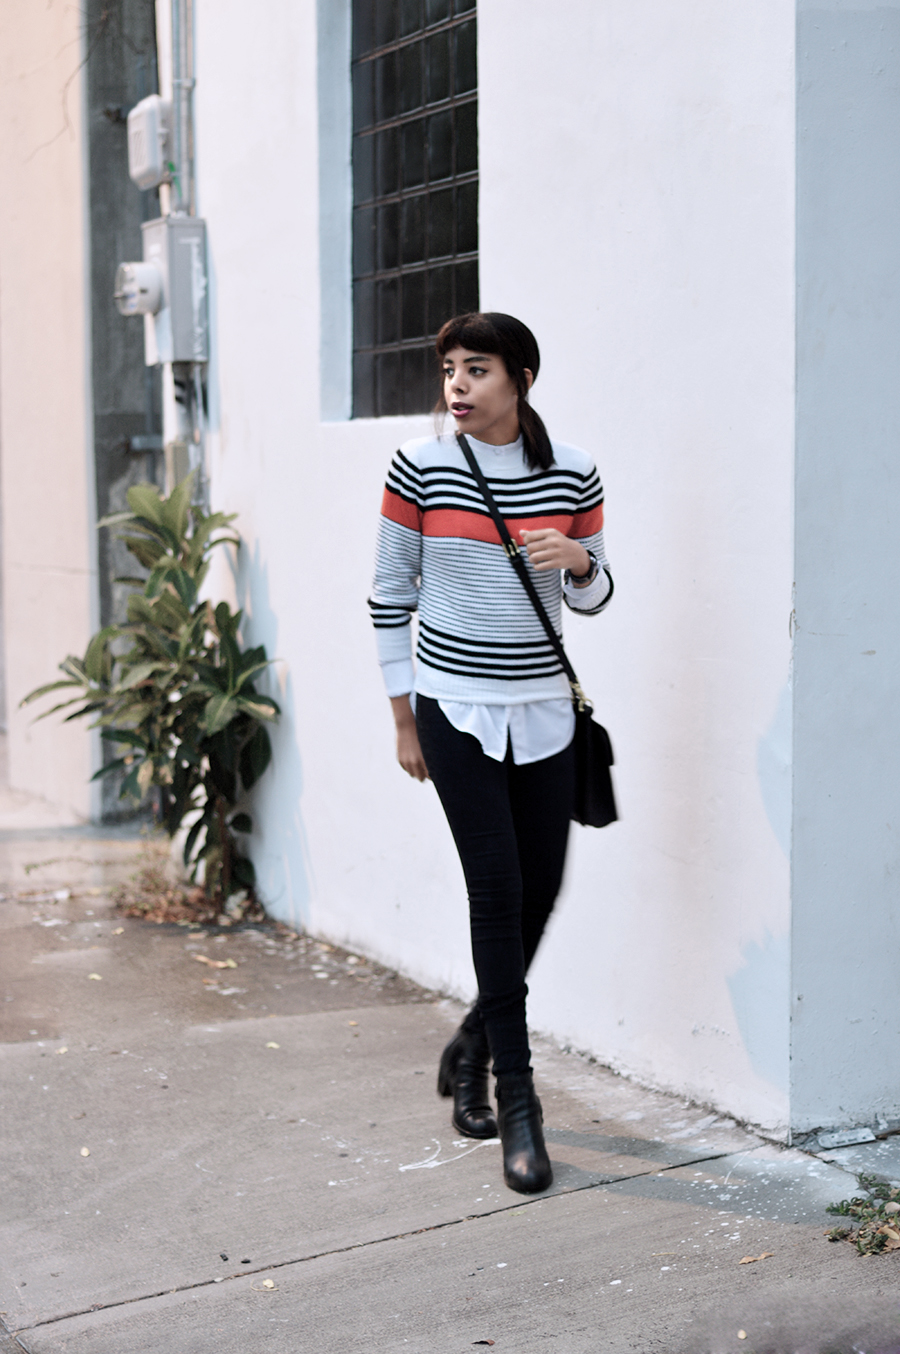 Minimalist Indie Fashion Blogger Anais Alexandre of Down to Stars in a simple Fall or Winter look with a clean aesthetic look